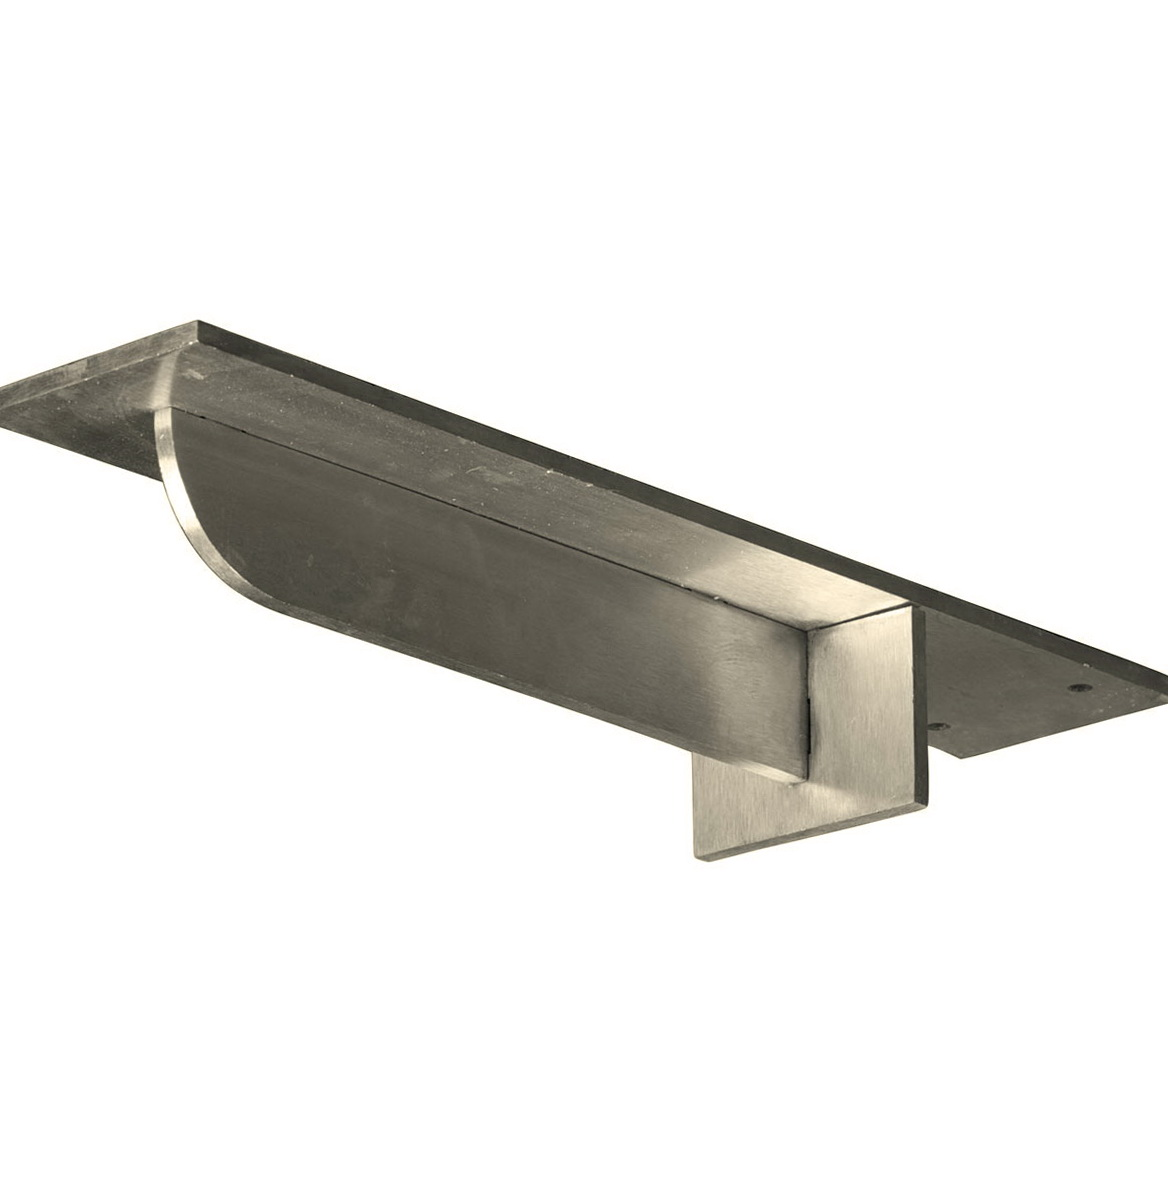 Stainless Steel Wall Shelf Brackets